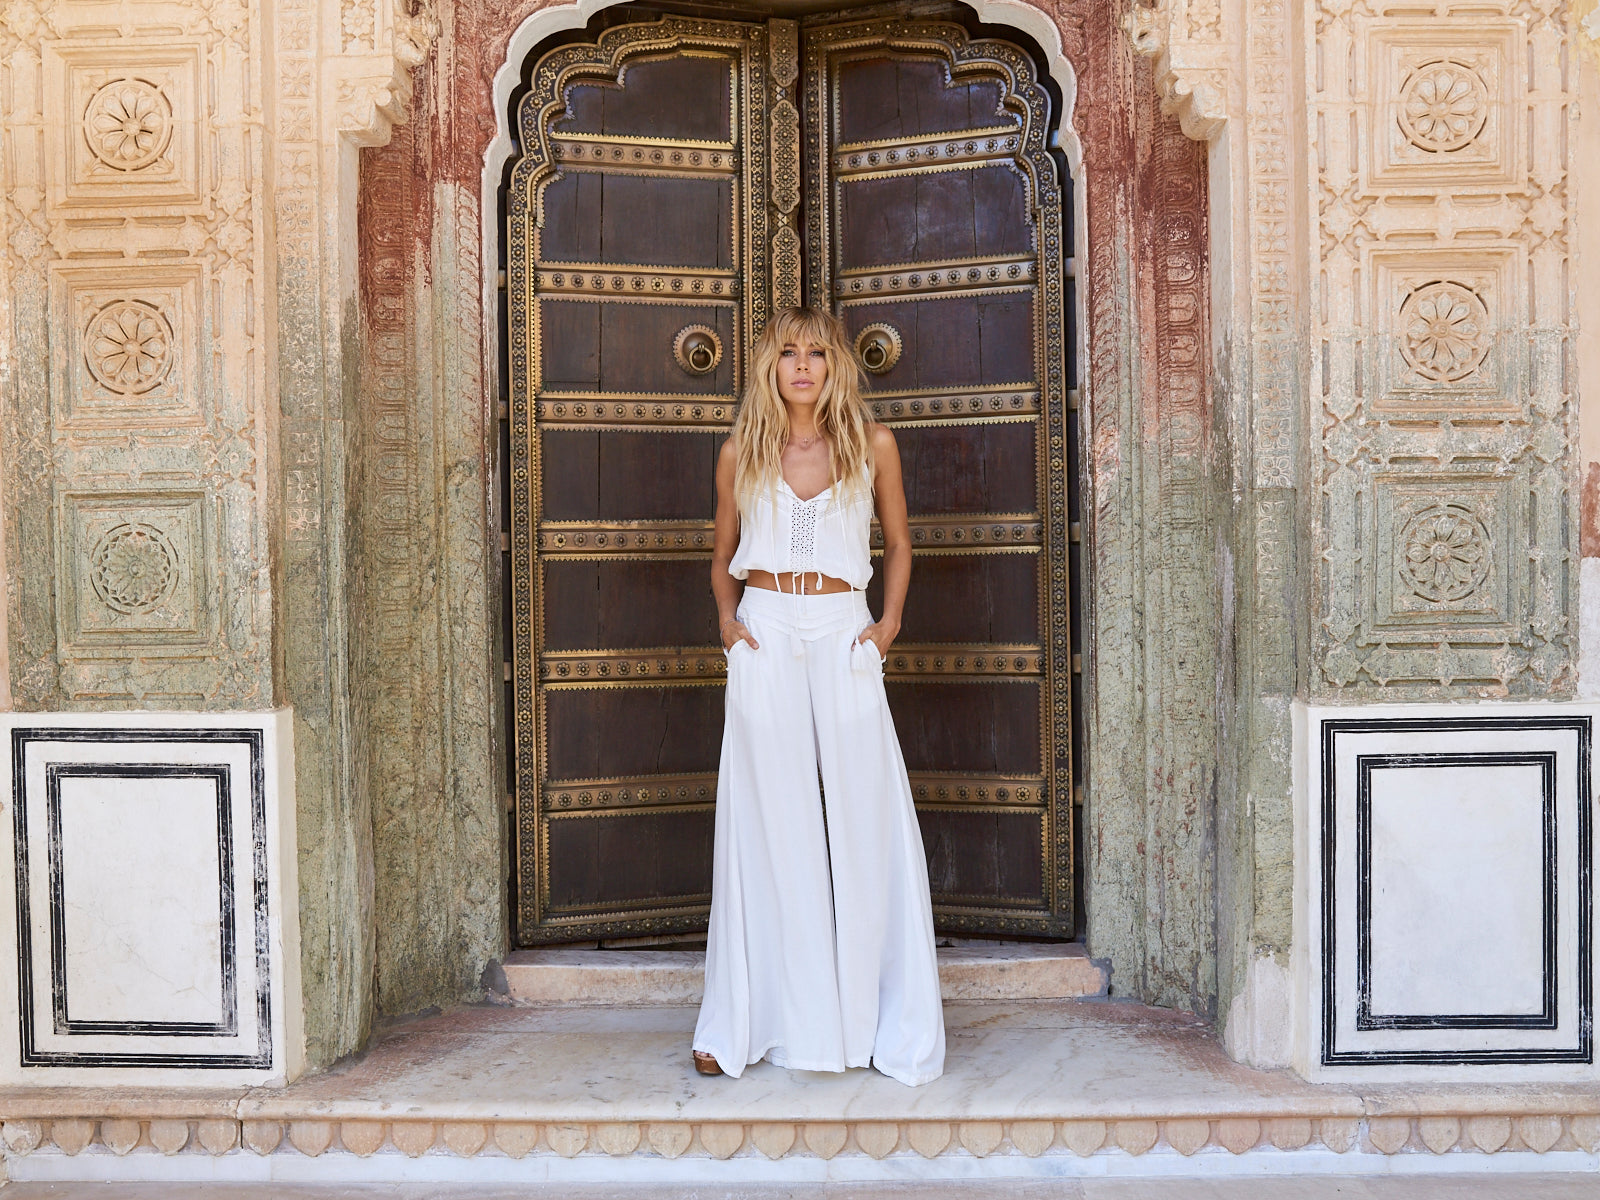 Kivari Shiva Collection Jasmine Palazzo Pants Rani Singlet